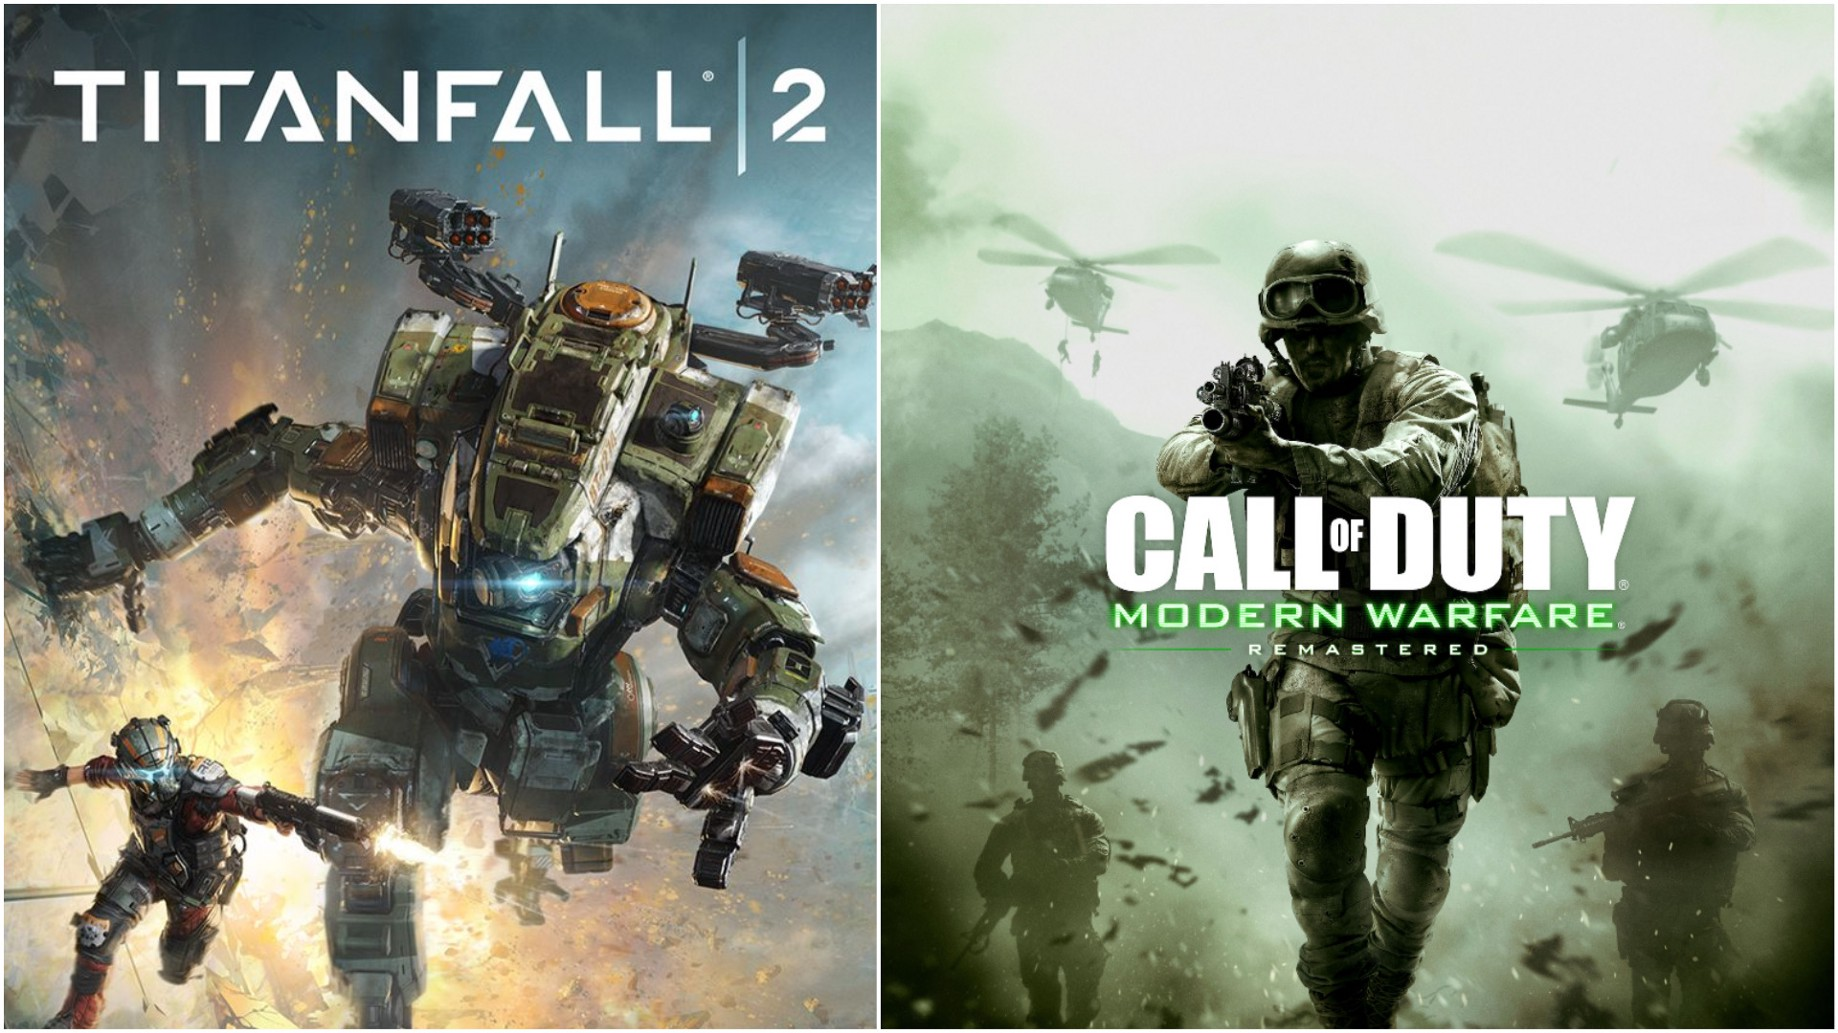 Titanfall 2 and Modern Warfare Remastered: What's Old is New Again